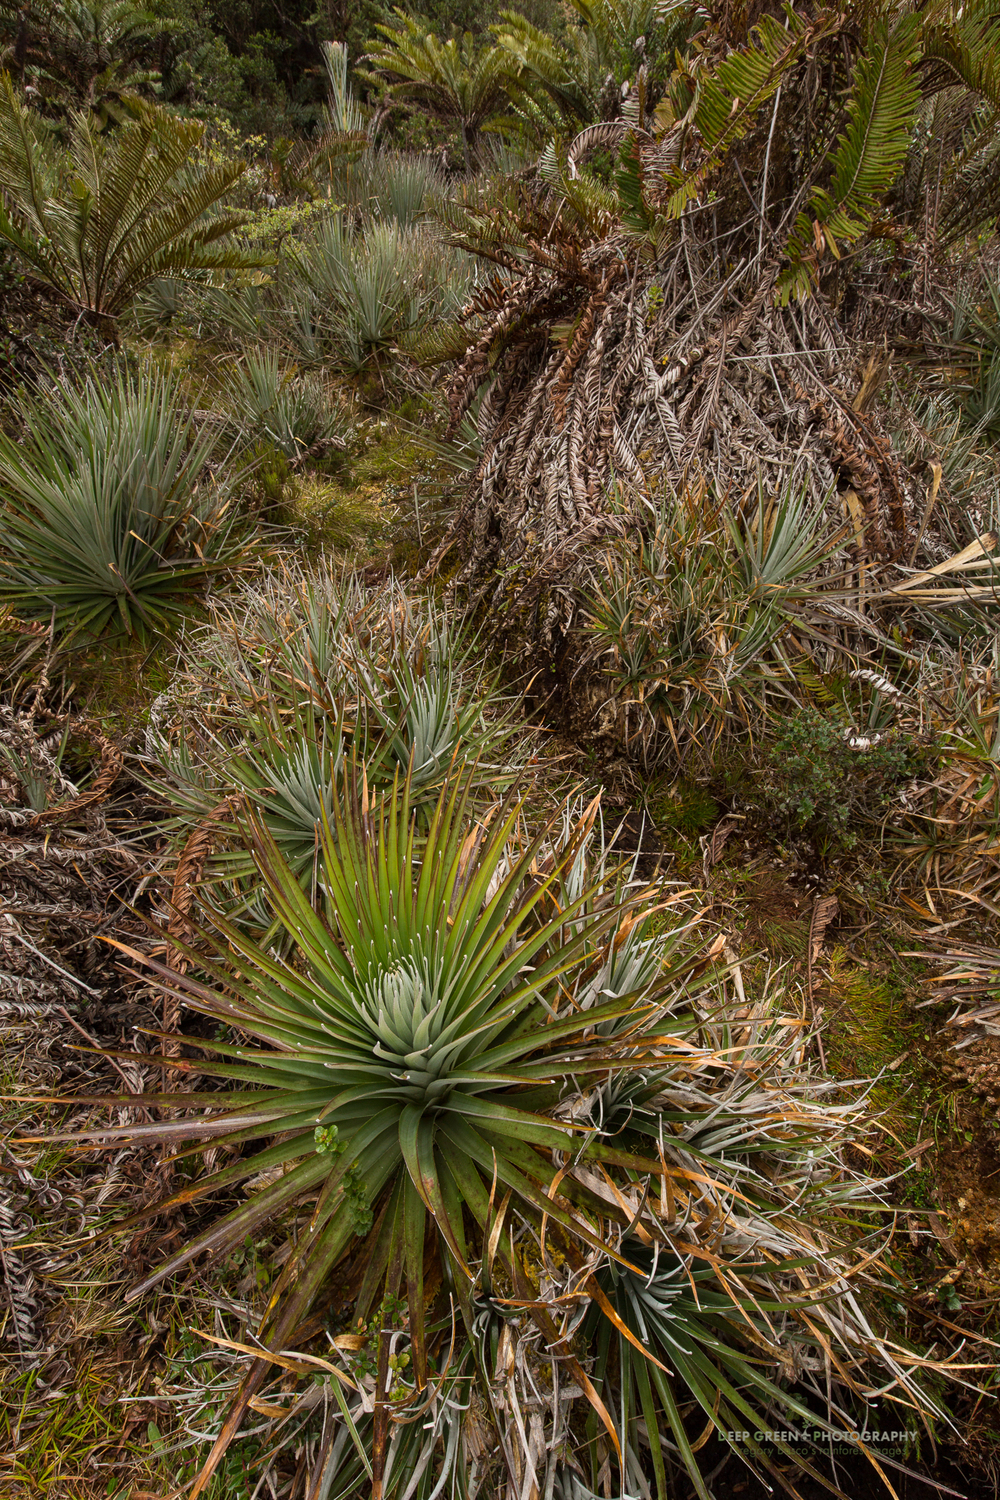 highland vegetation in Tapanti National Park